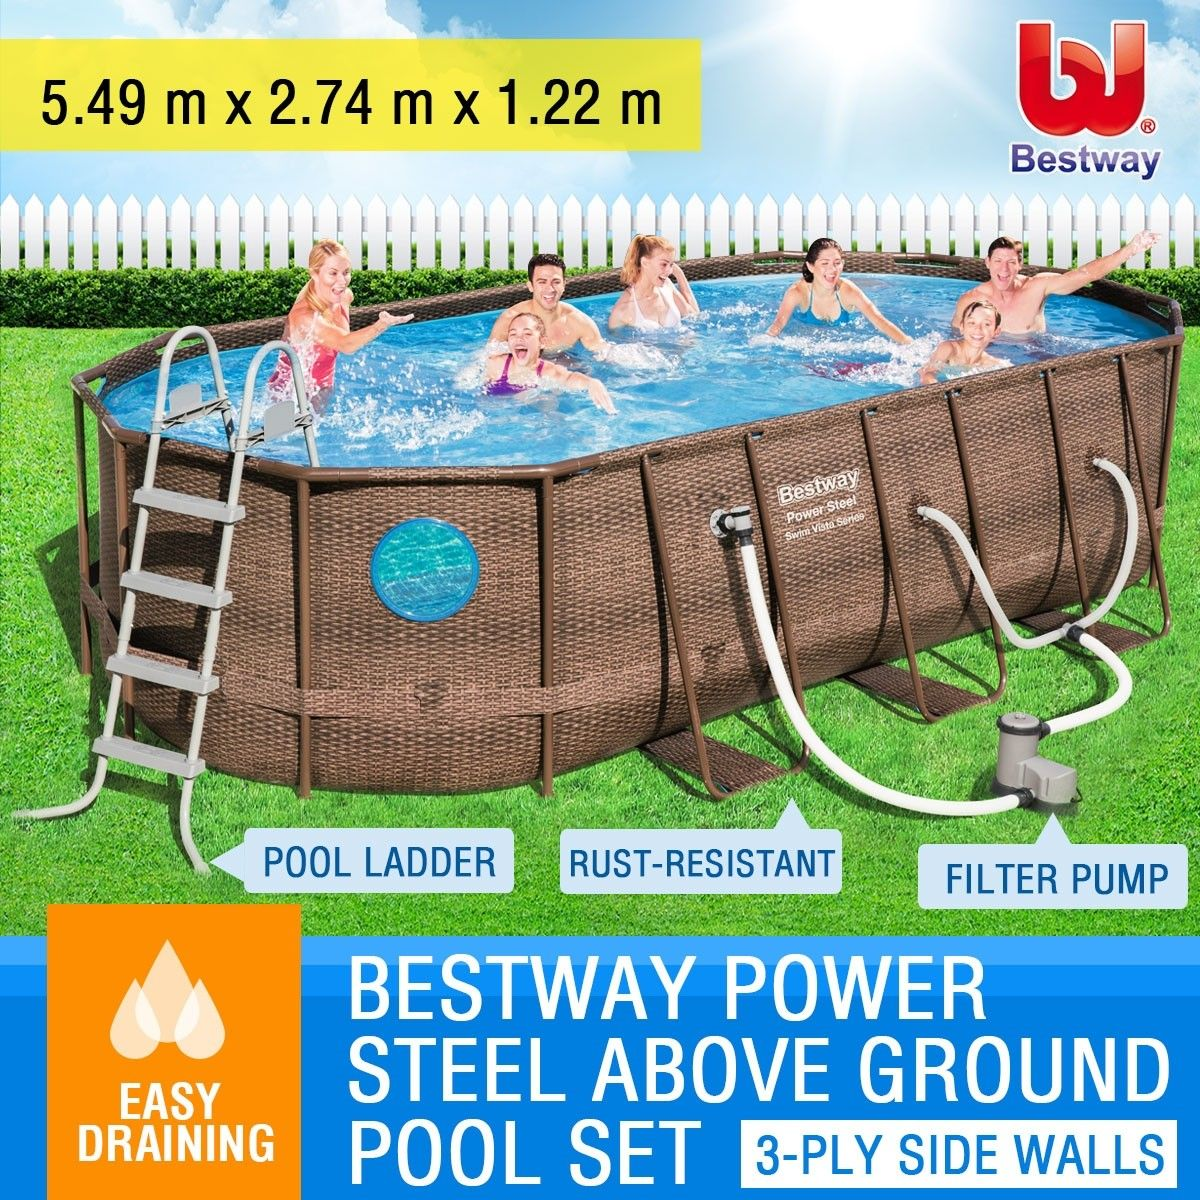 Bestway steel frame above ground swimming pool filter pump - Bestway steel frame swimming pool ...